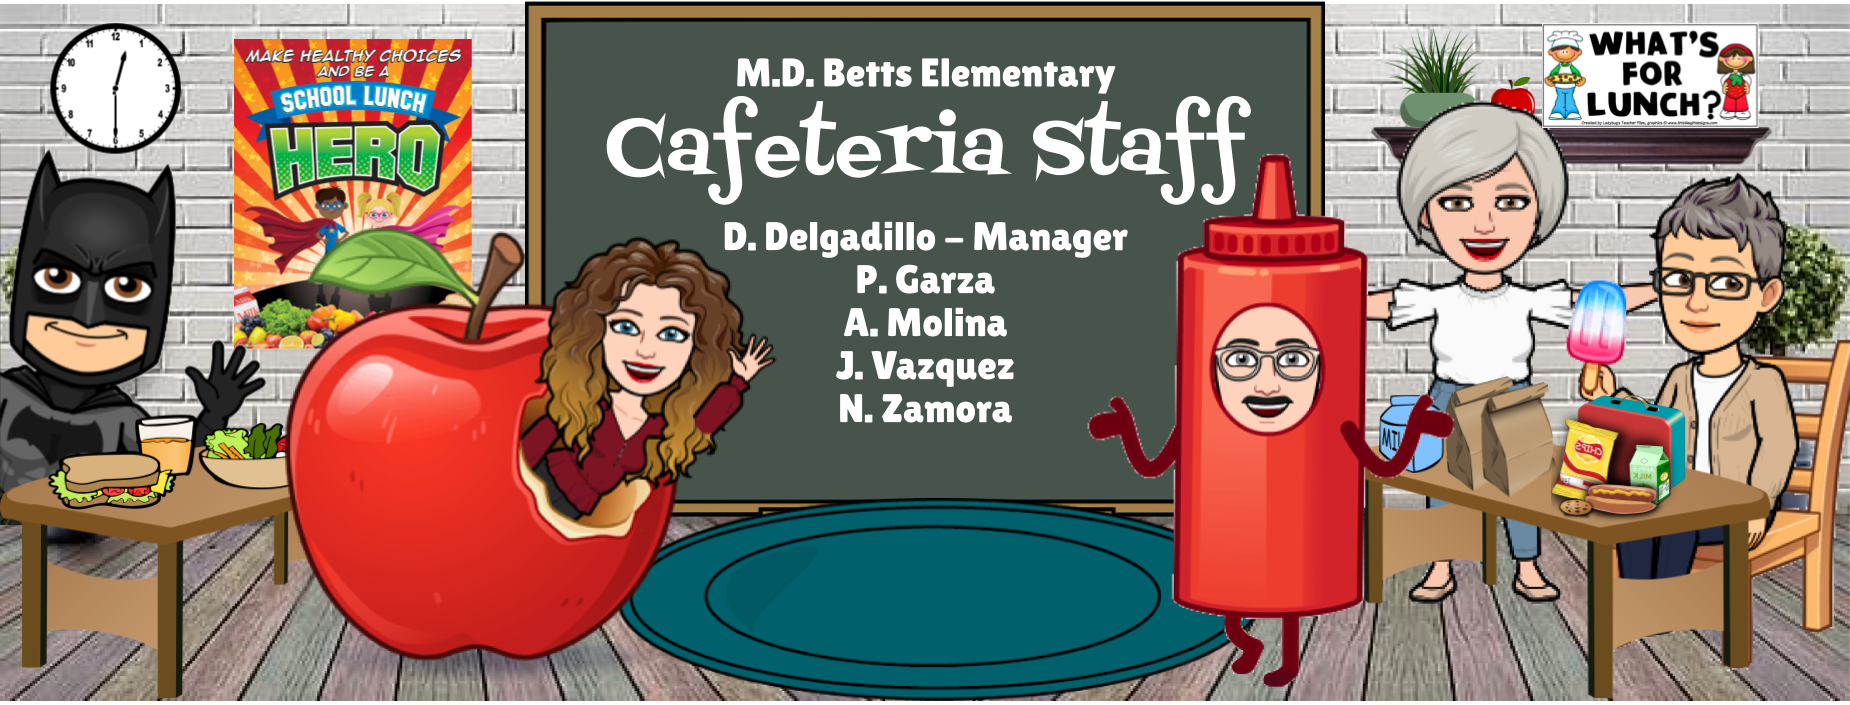 Image of Betts Bitmoji Staff - Cafeteria